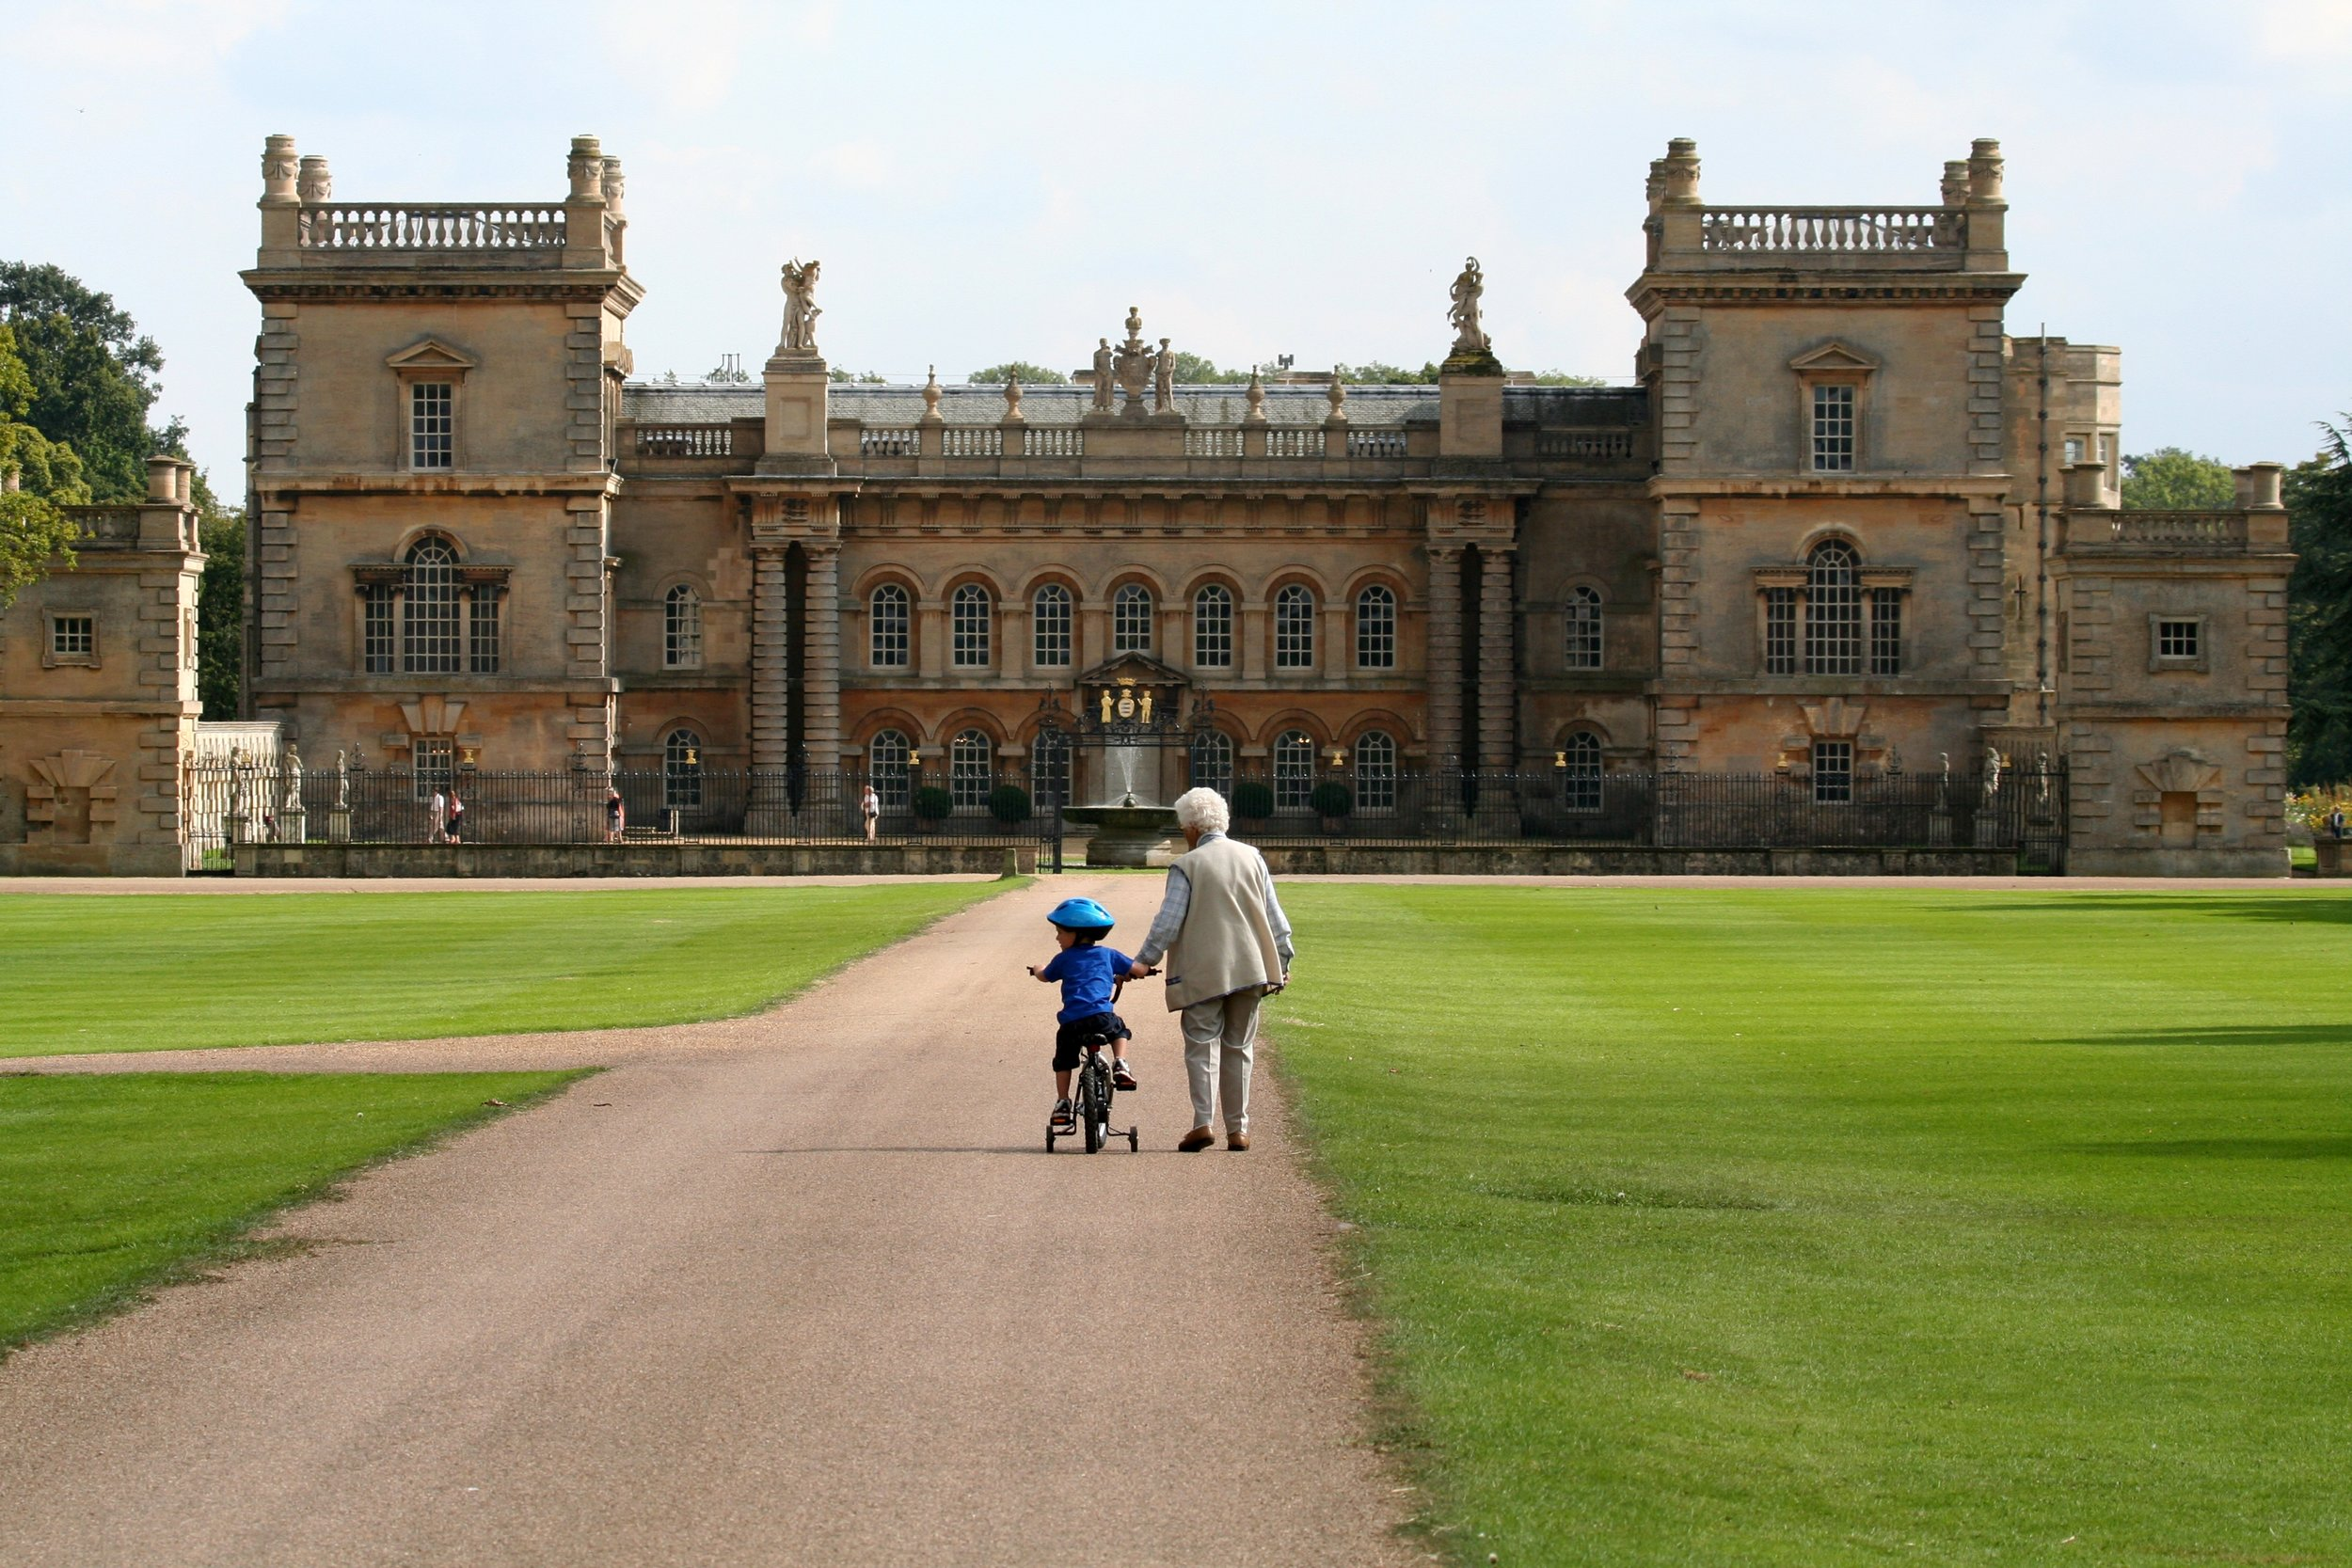 Cycle hire Grimsthorpe Lincolnshire